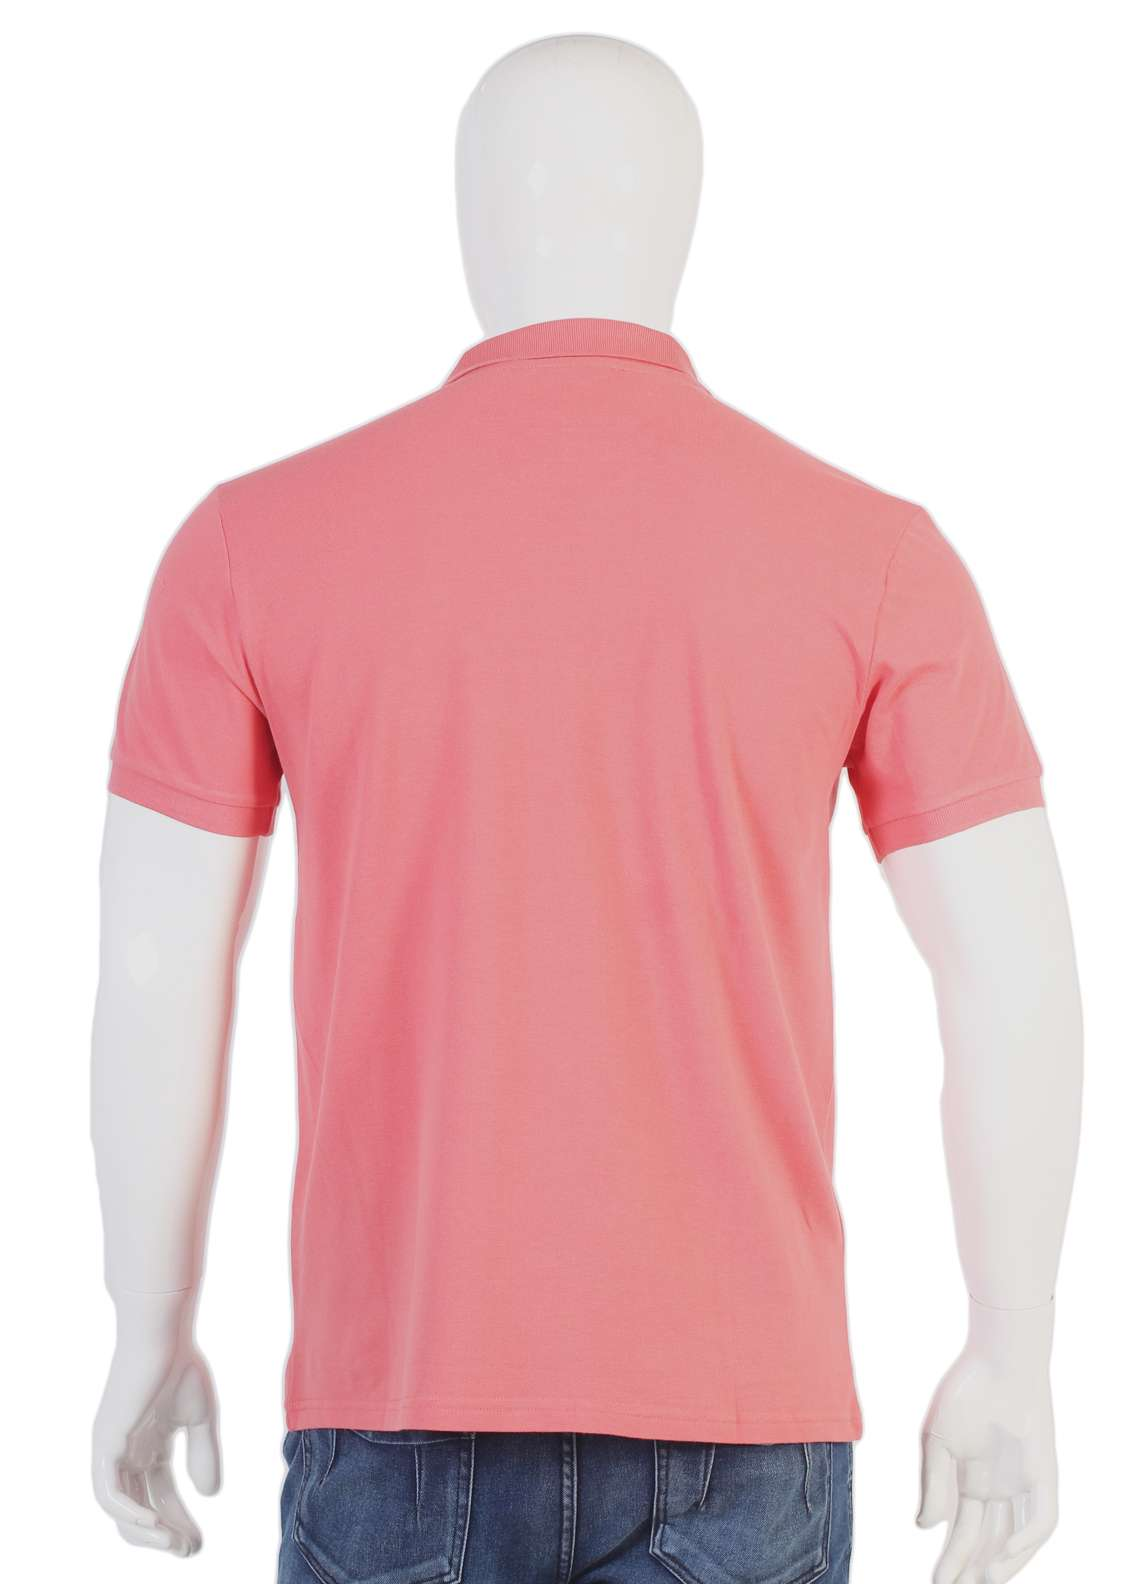 Sanaulla Exclusive Range Jersey Polo T-Shirts for Men - Pink TKM18S 321